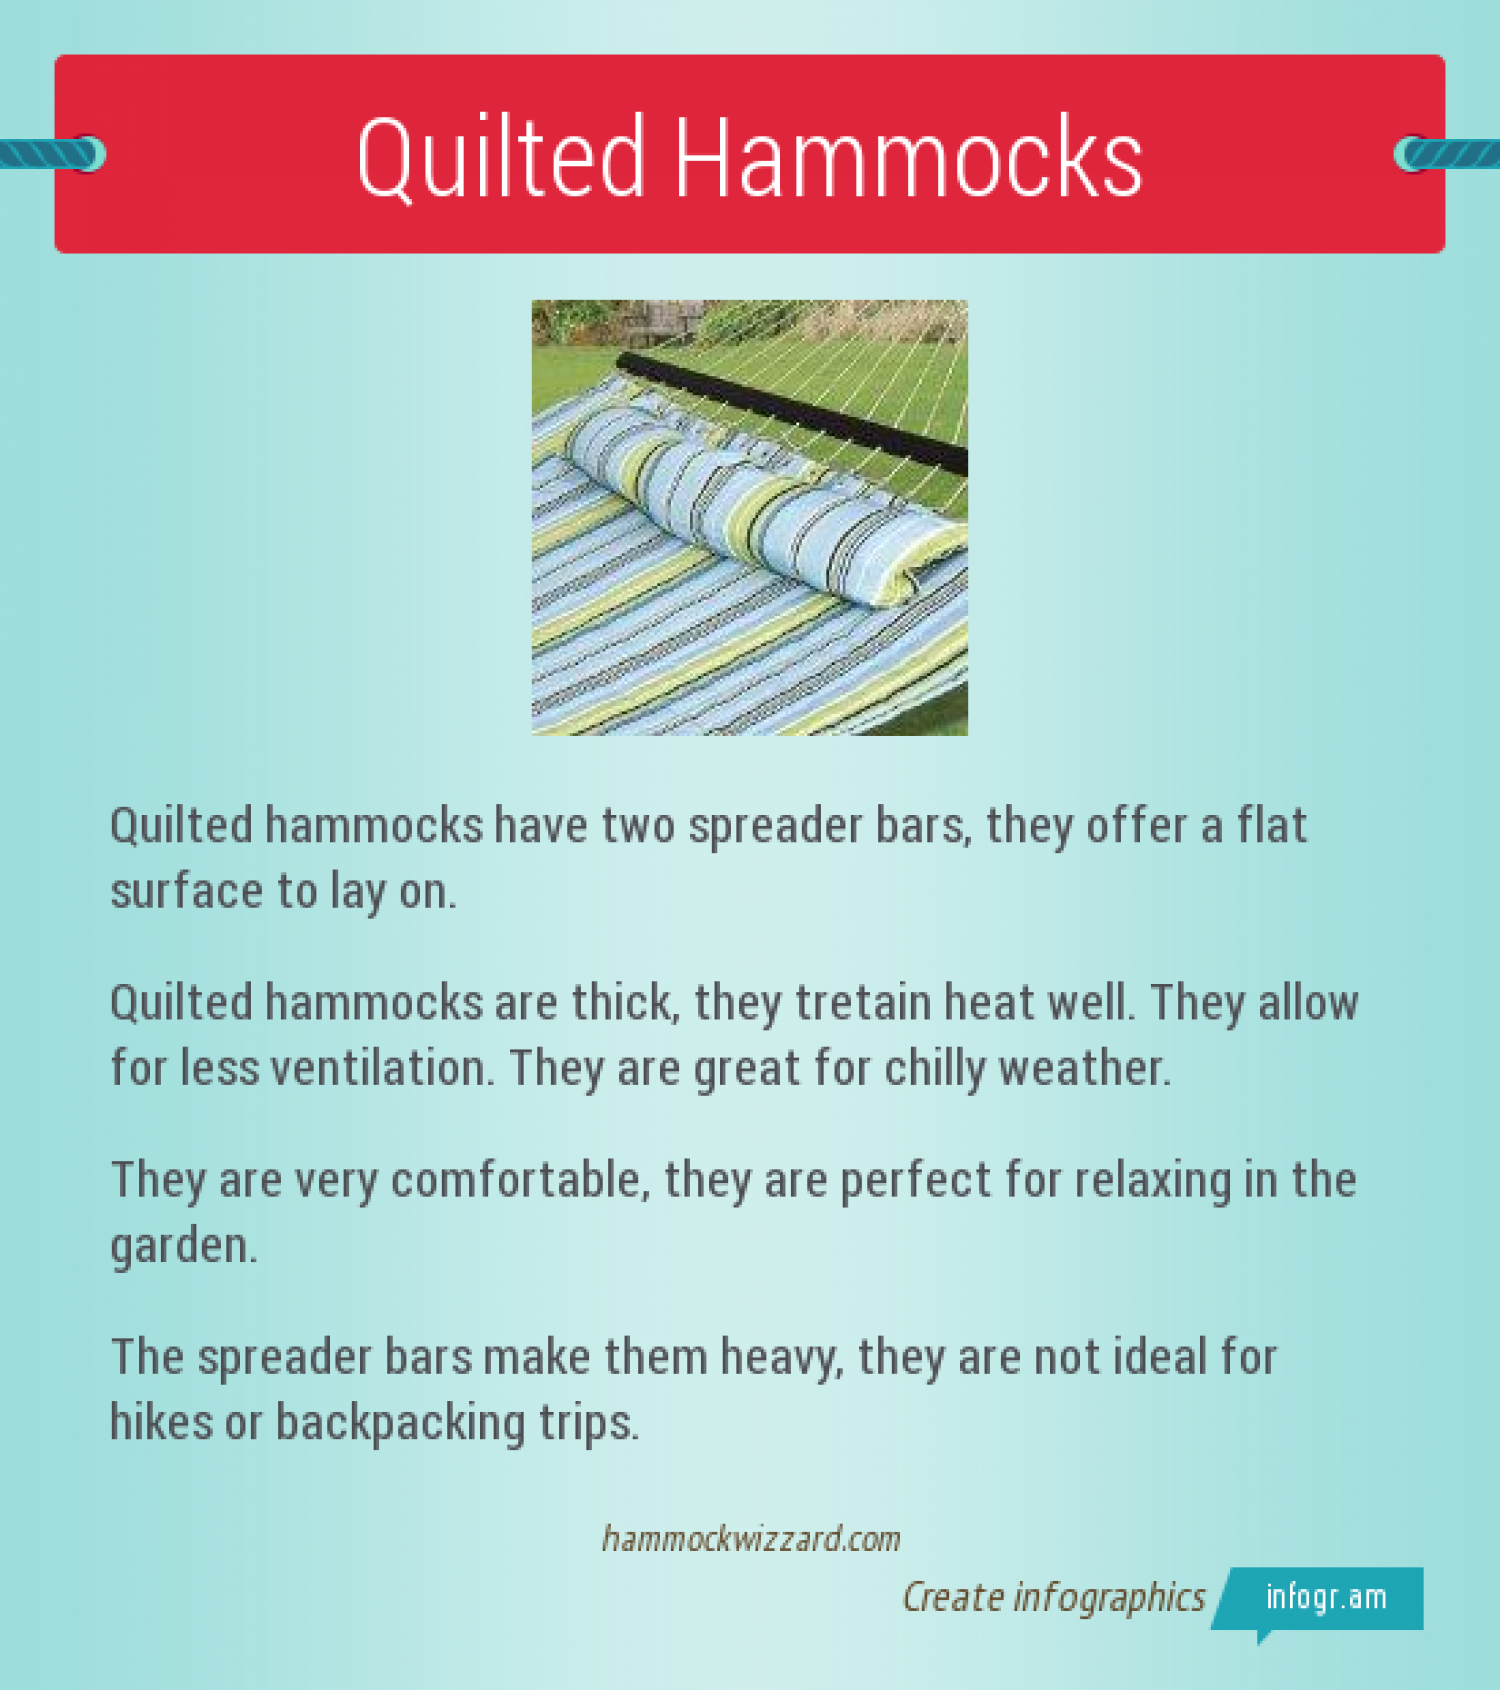 Quilted Hammocks Infographic